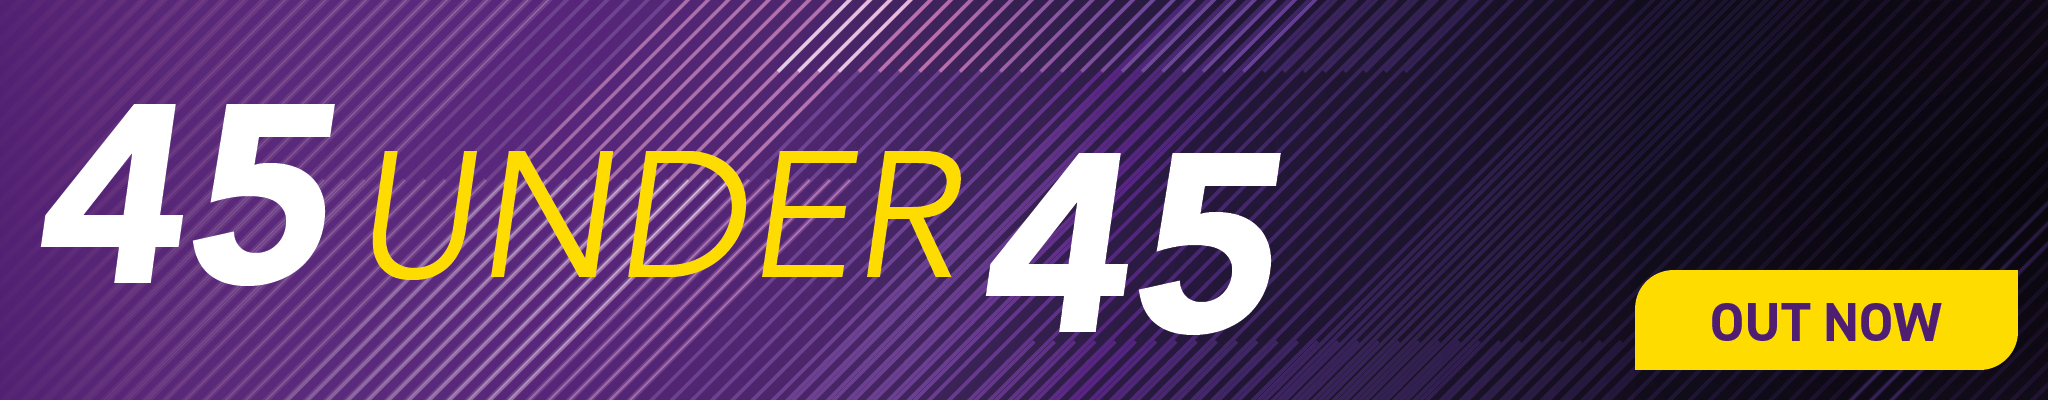 45 under 45 out now